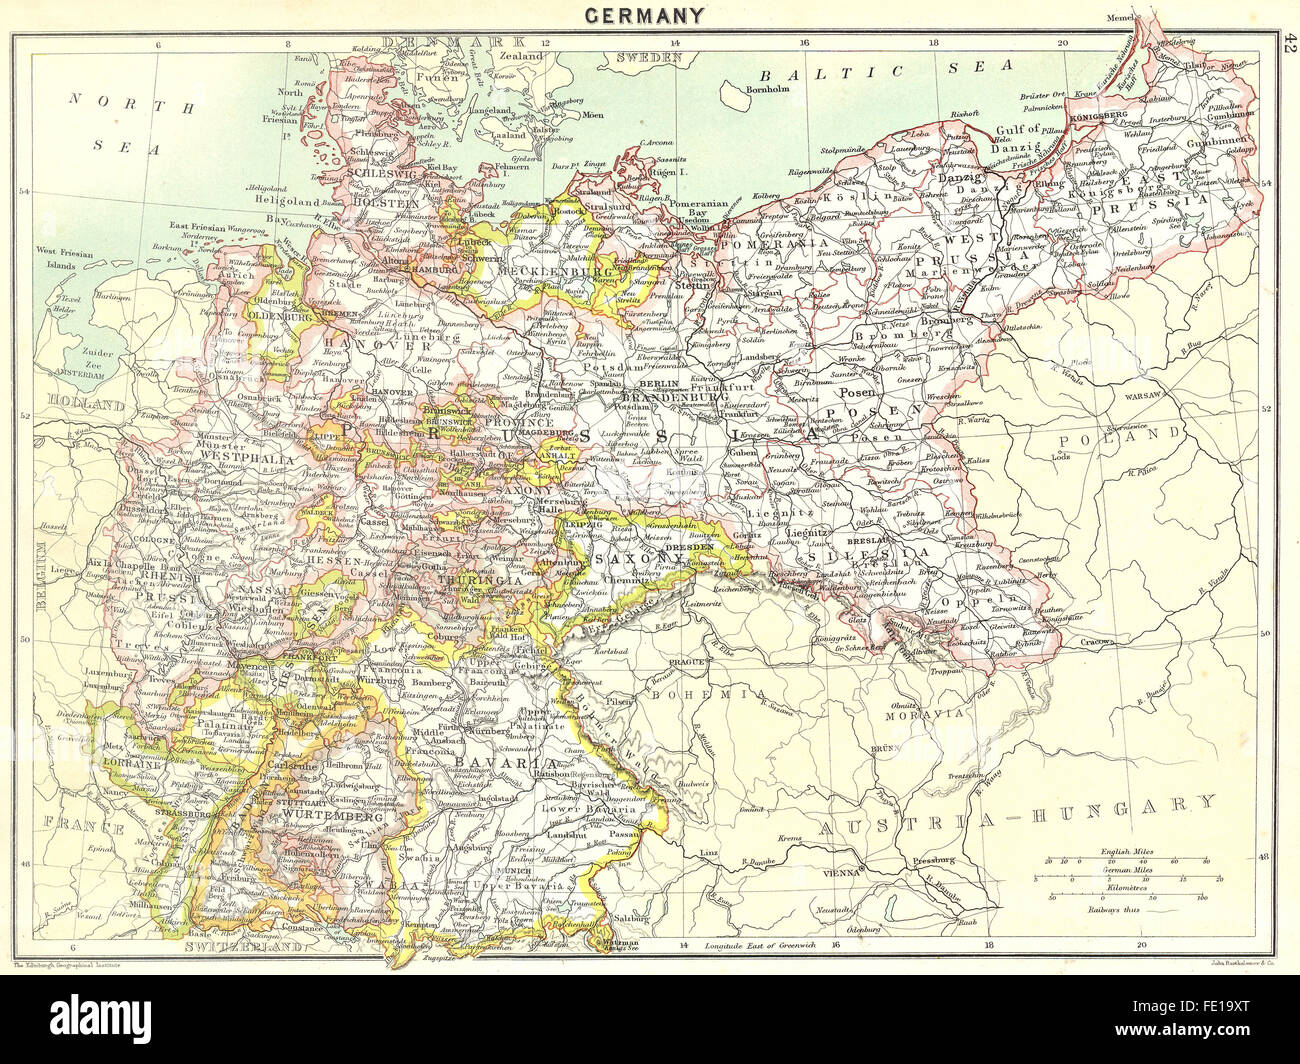 Map Of Germany 1900.Germany German Empire 1900 Antique Map Stock Photo